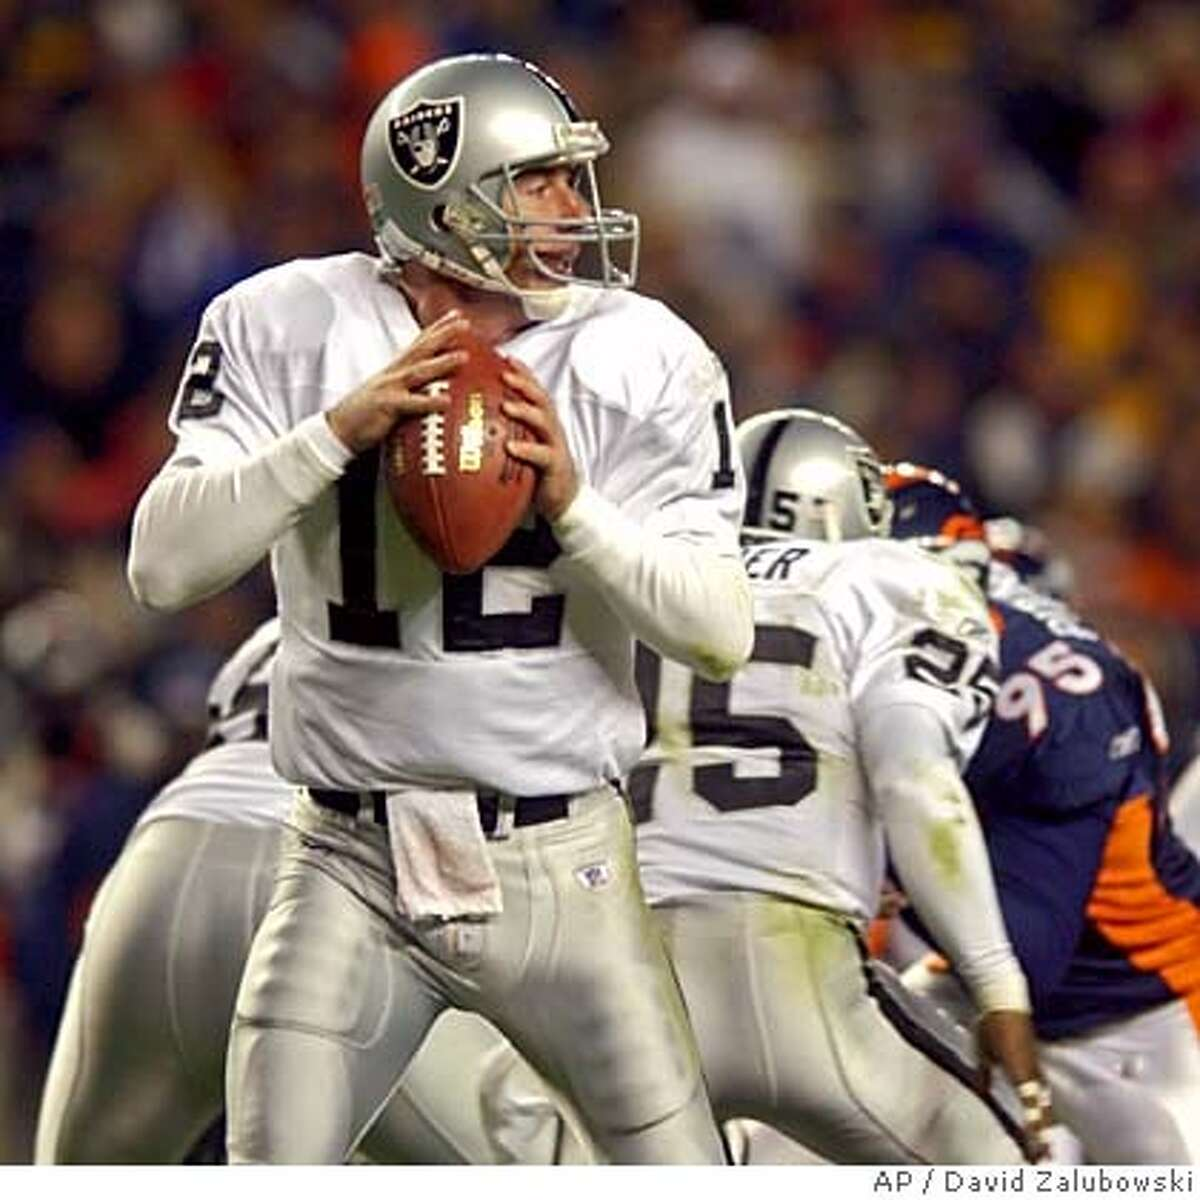 Oakland Raiders quarterback Rich Gannon setup to throw from the pocket during the second quarter against the Denver Broncos on Monday night, Nov. 11, 2002, in Denver. . (AP Photo/David Zalubowski) ALSO RAN 11/07/03 CAT